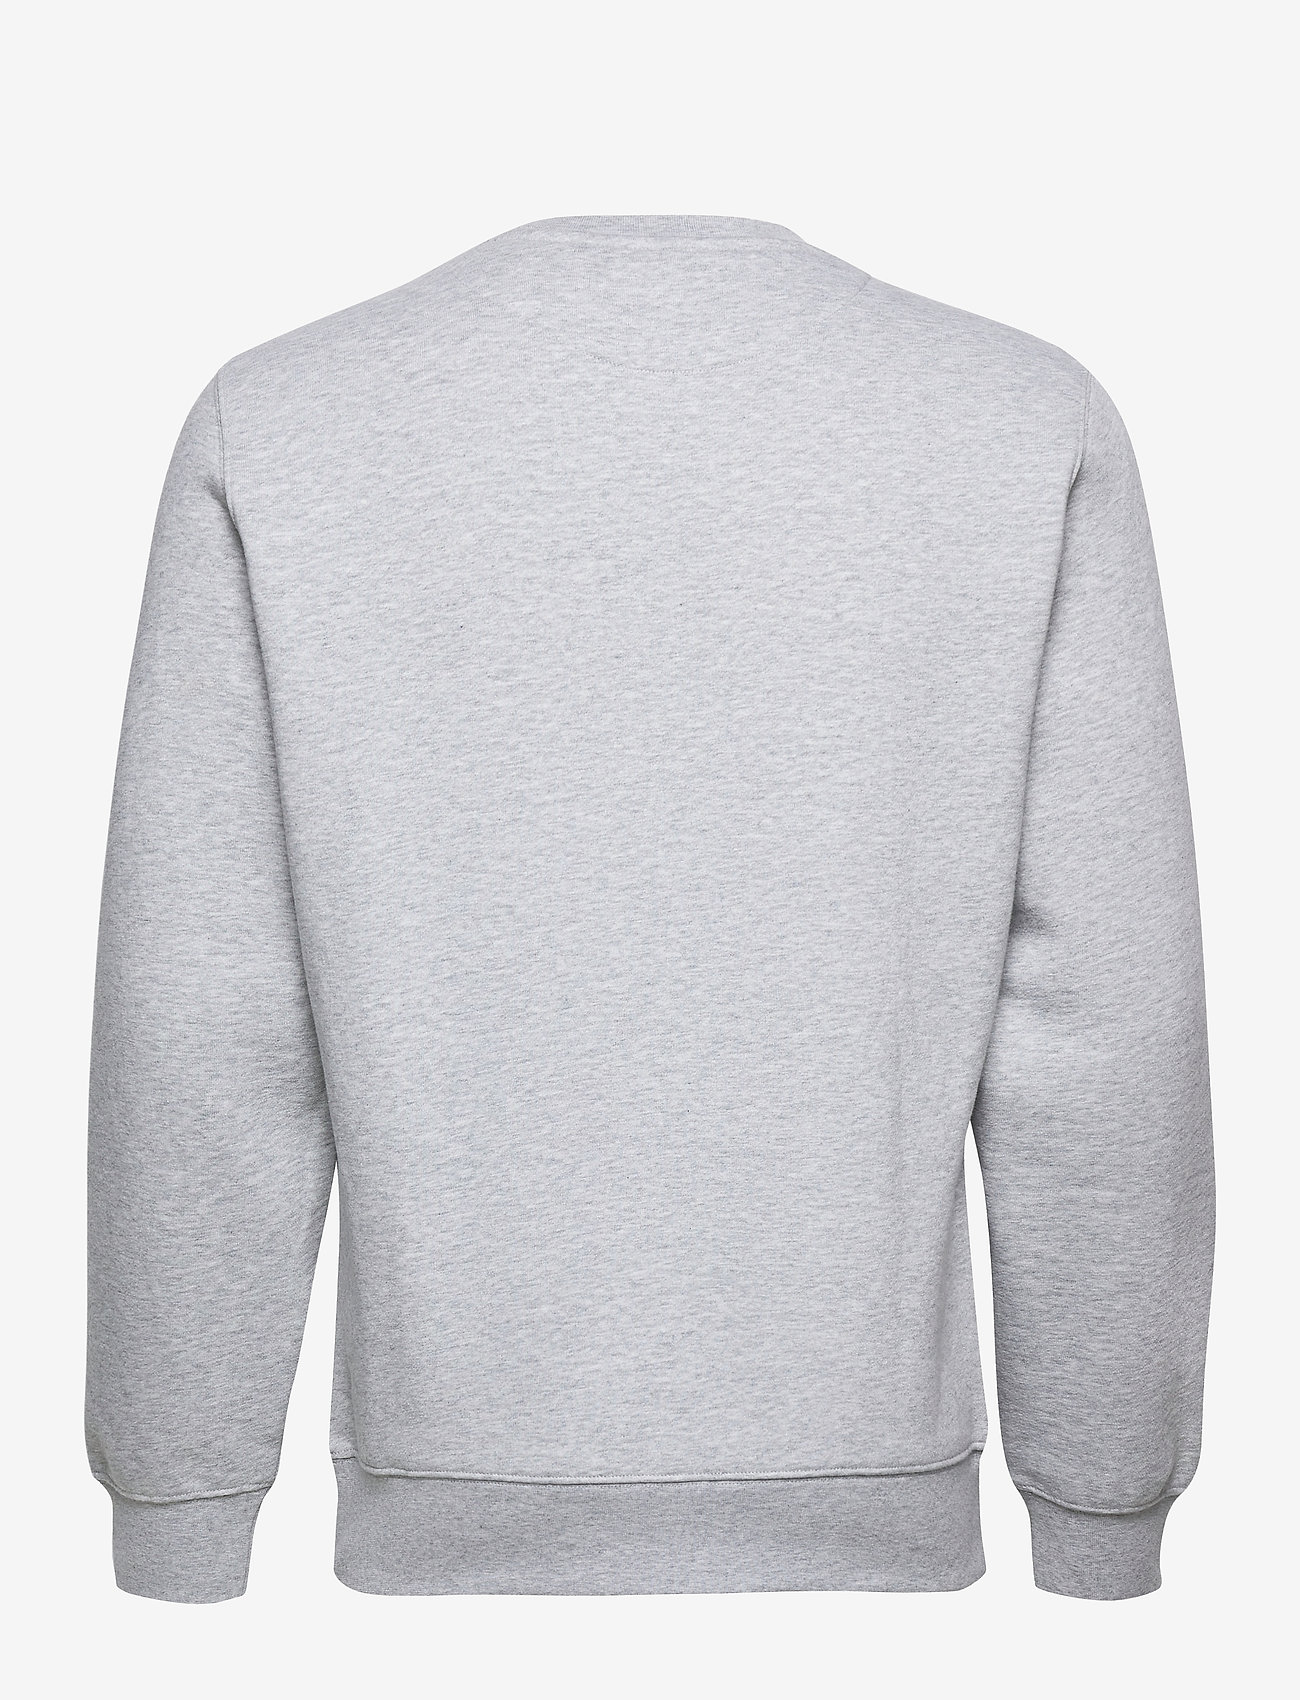 Björn Borg CREW CENTRE CENTRE - Sweatshirts H108BY LIGHT GREY MELANGE - Menn Klær